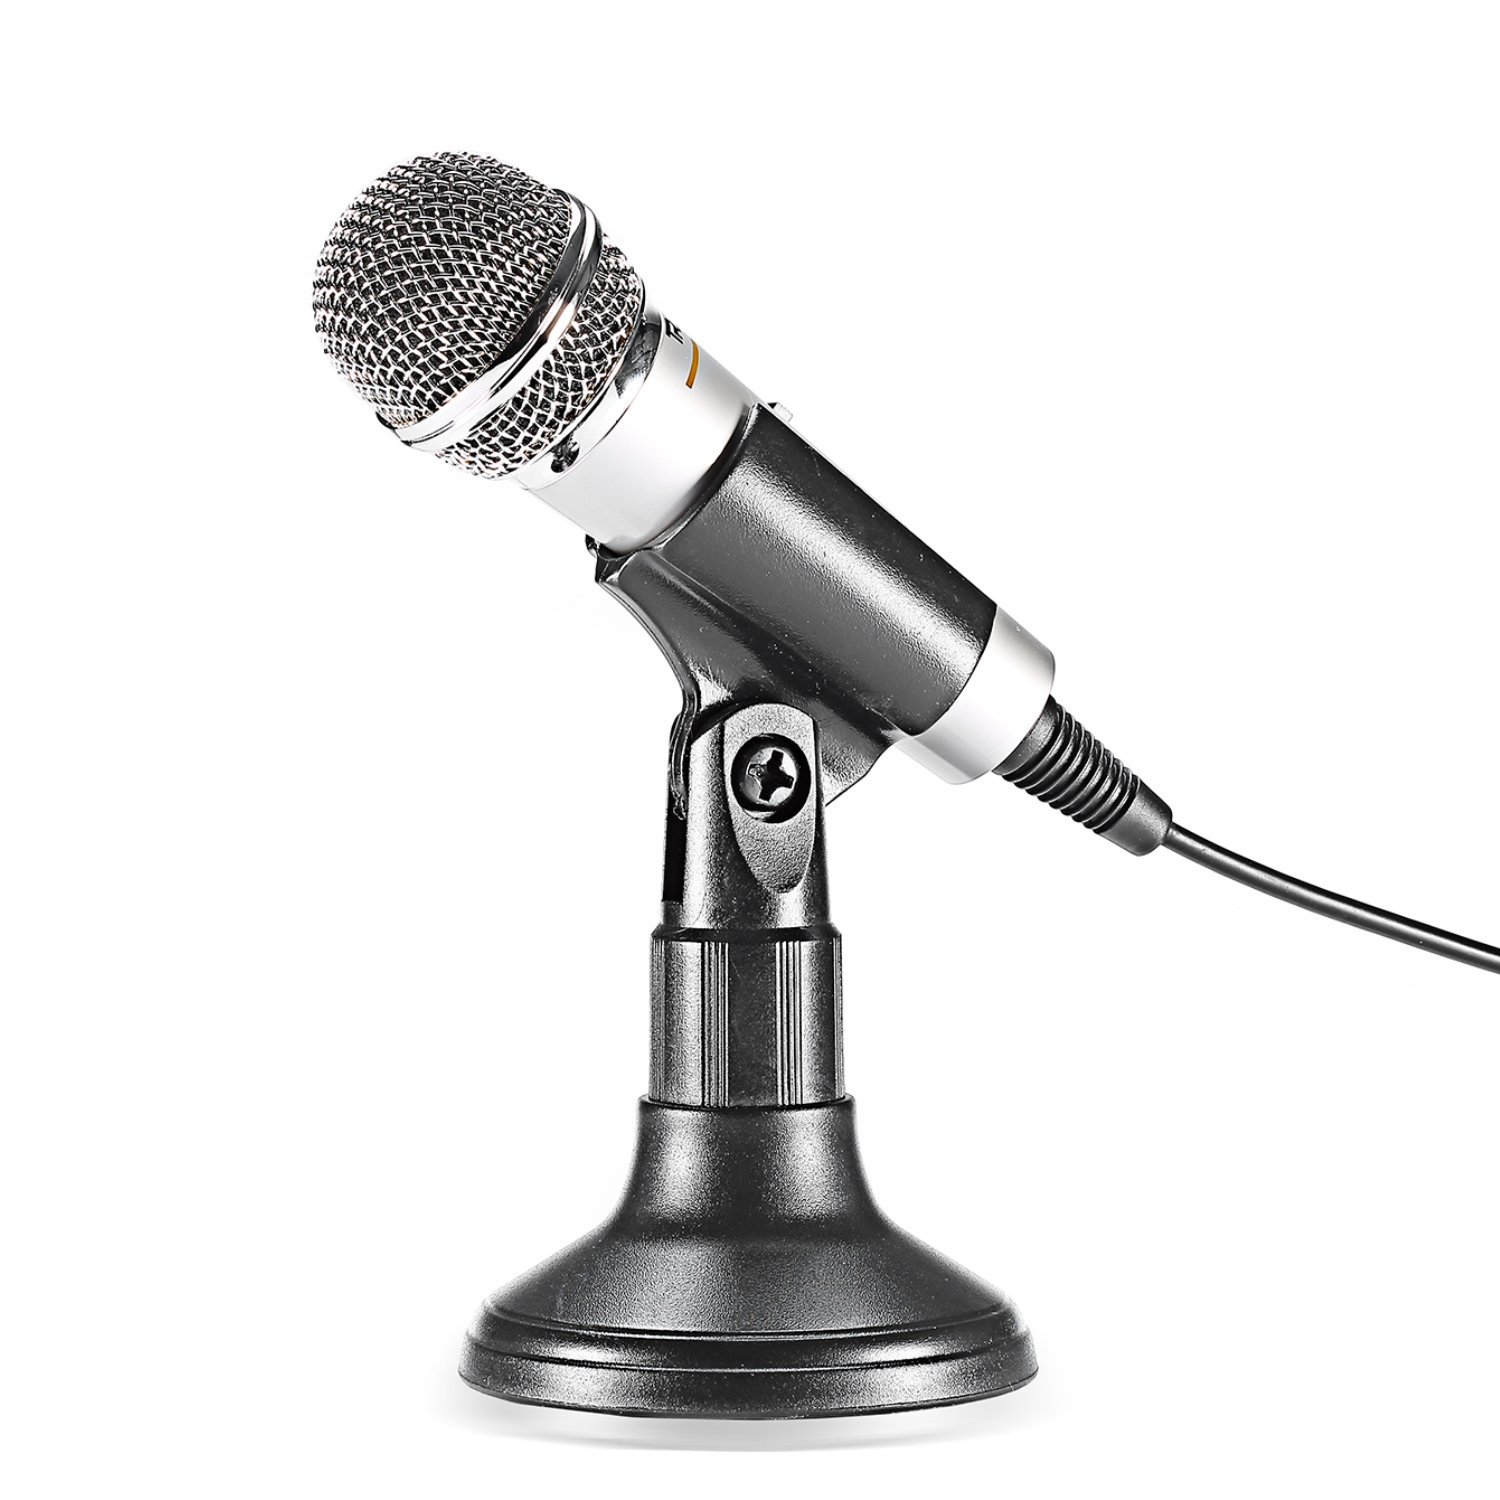 Neewer NW-308 3.5MM Desktop Microphone with Stand and 3.5MM Stereo Plug for PC Computer or Laptop, Ideal for Whatsapp/QQ/MSN/SKYPE Internet Chat, Podcast, Singing, Recording or More